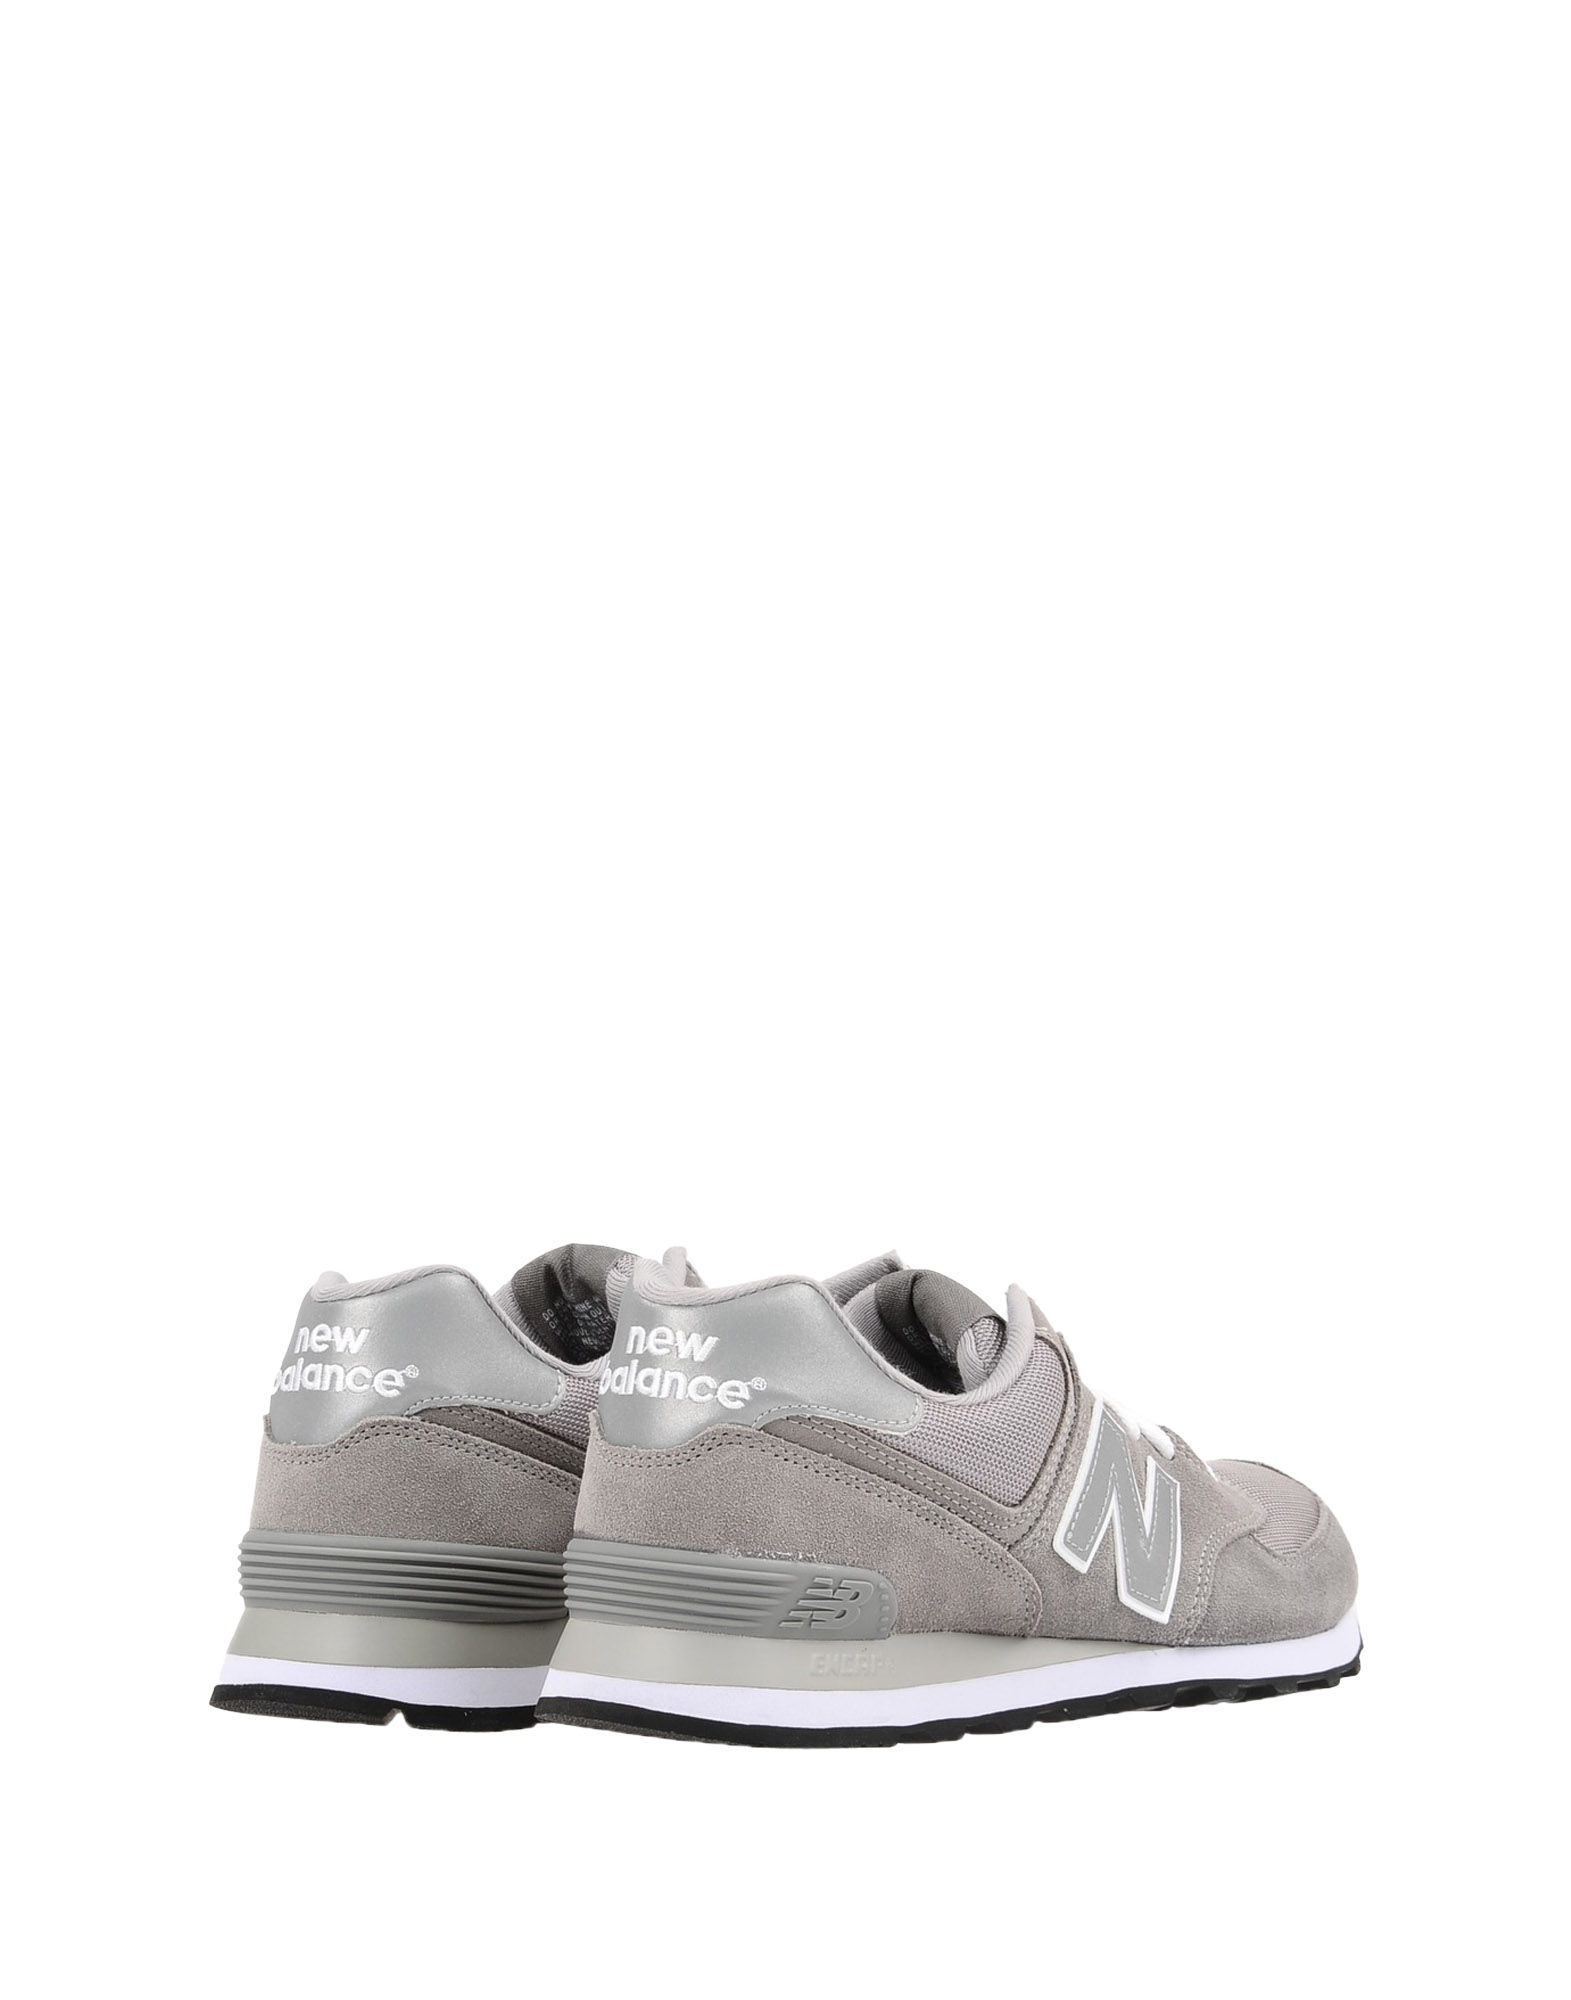 New Balance 574 Core 11333657GE Carryover  11333657GE Core dd4897